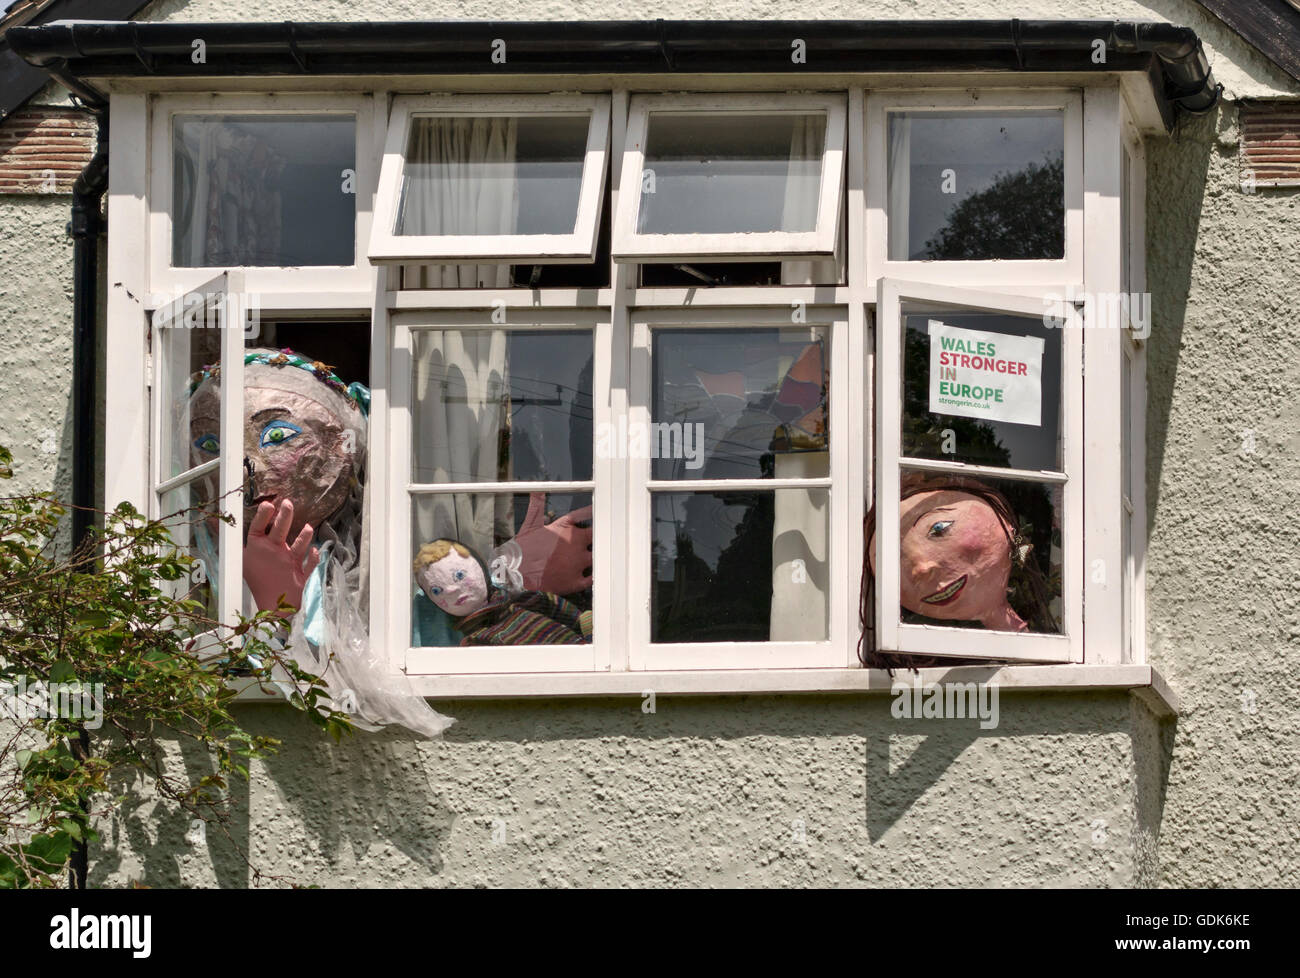 Presteigne, Powys, UK. Grotesque puppets looking out of a window, with a pro-EU poster - Stock Image